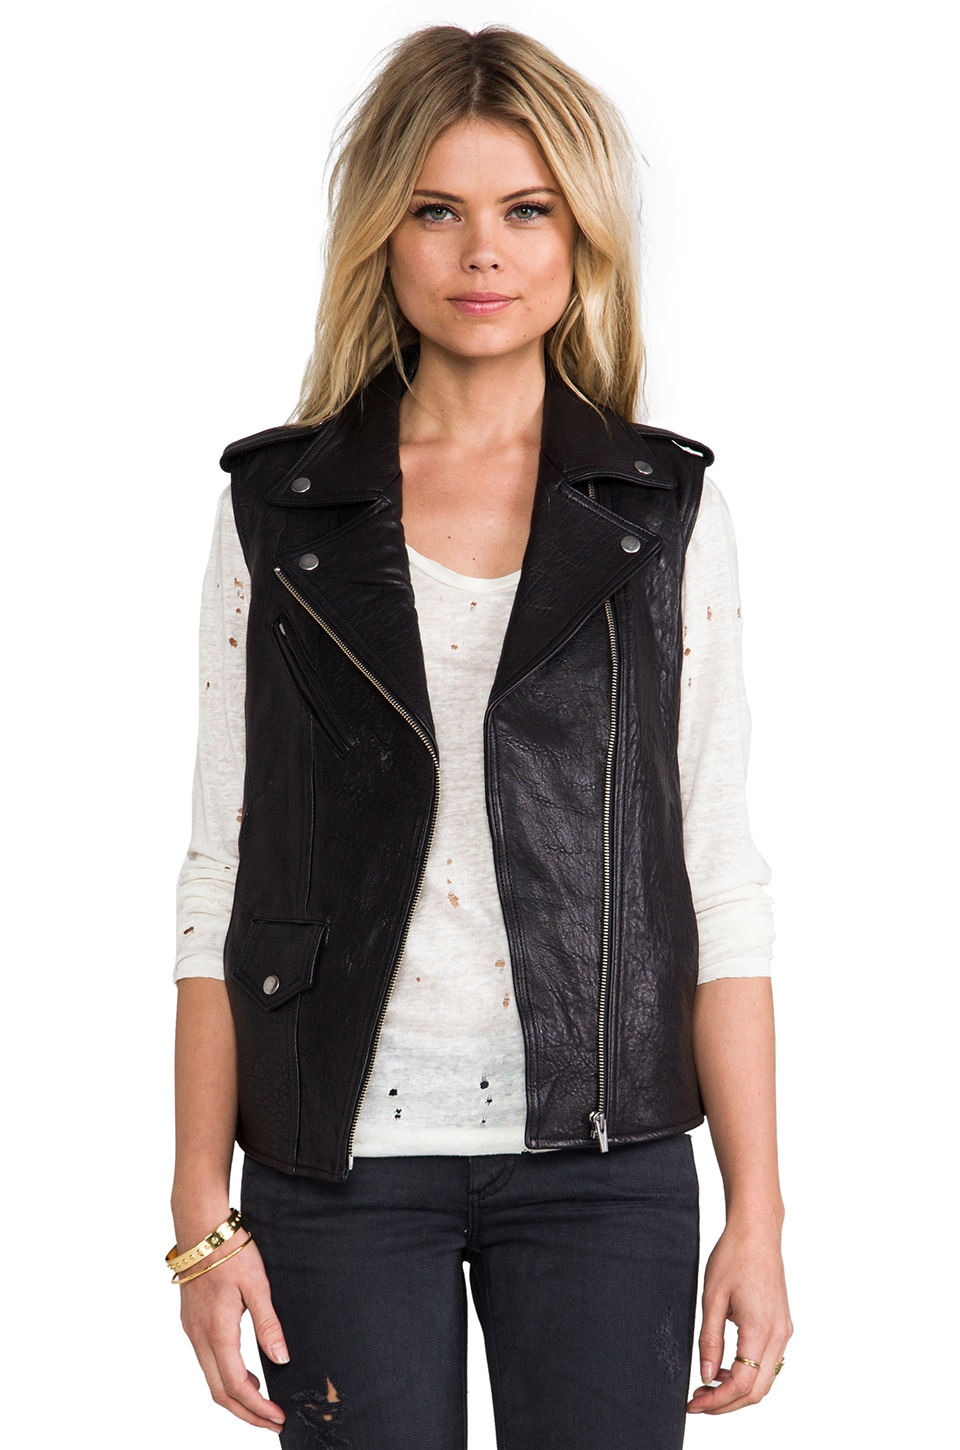 VEDA Castor Classic Leather Vest in Black